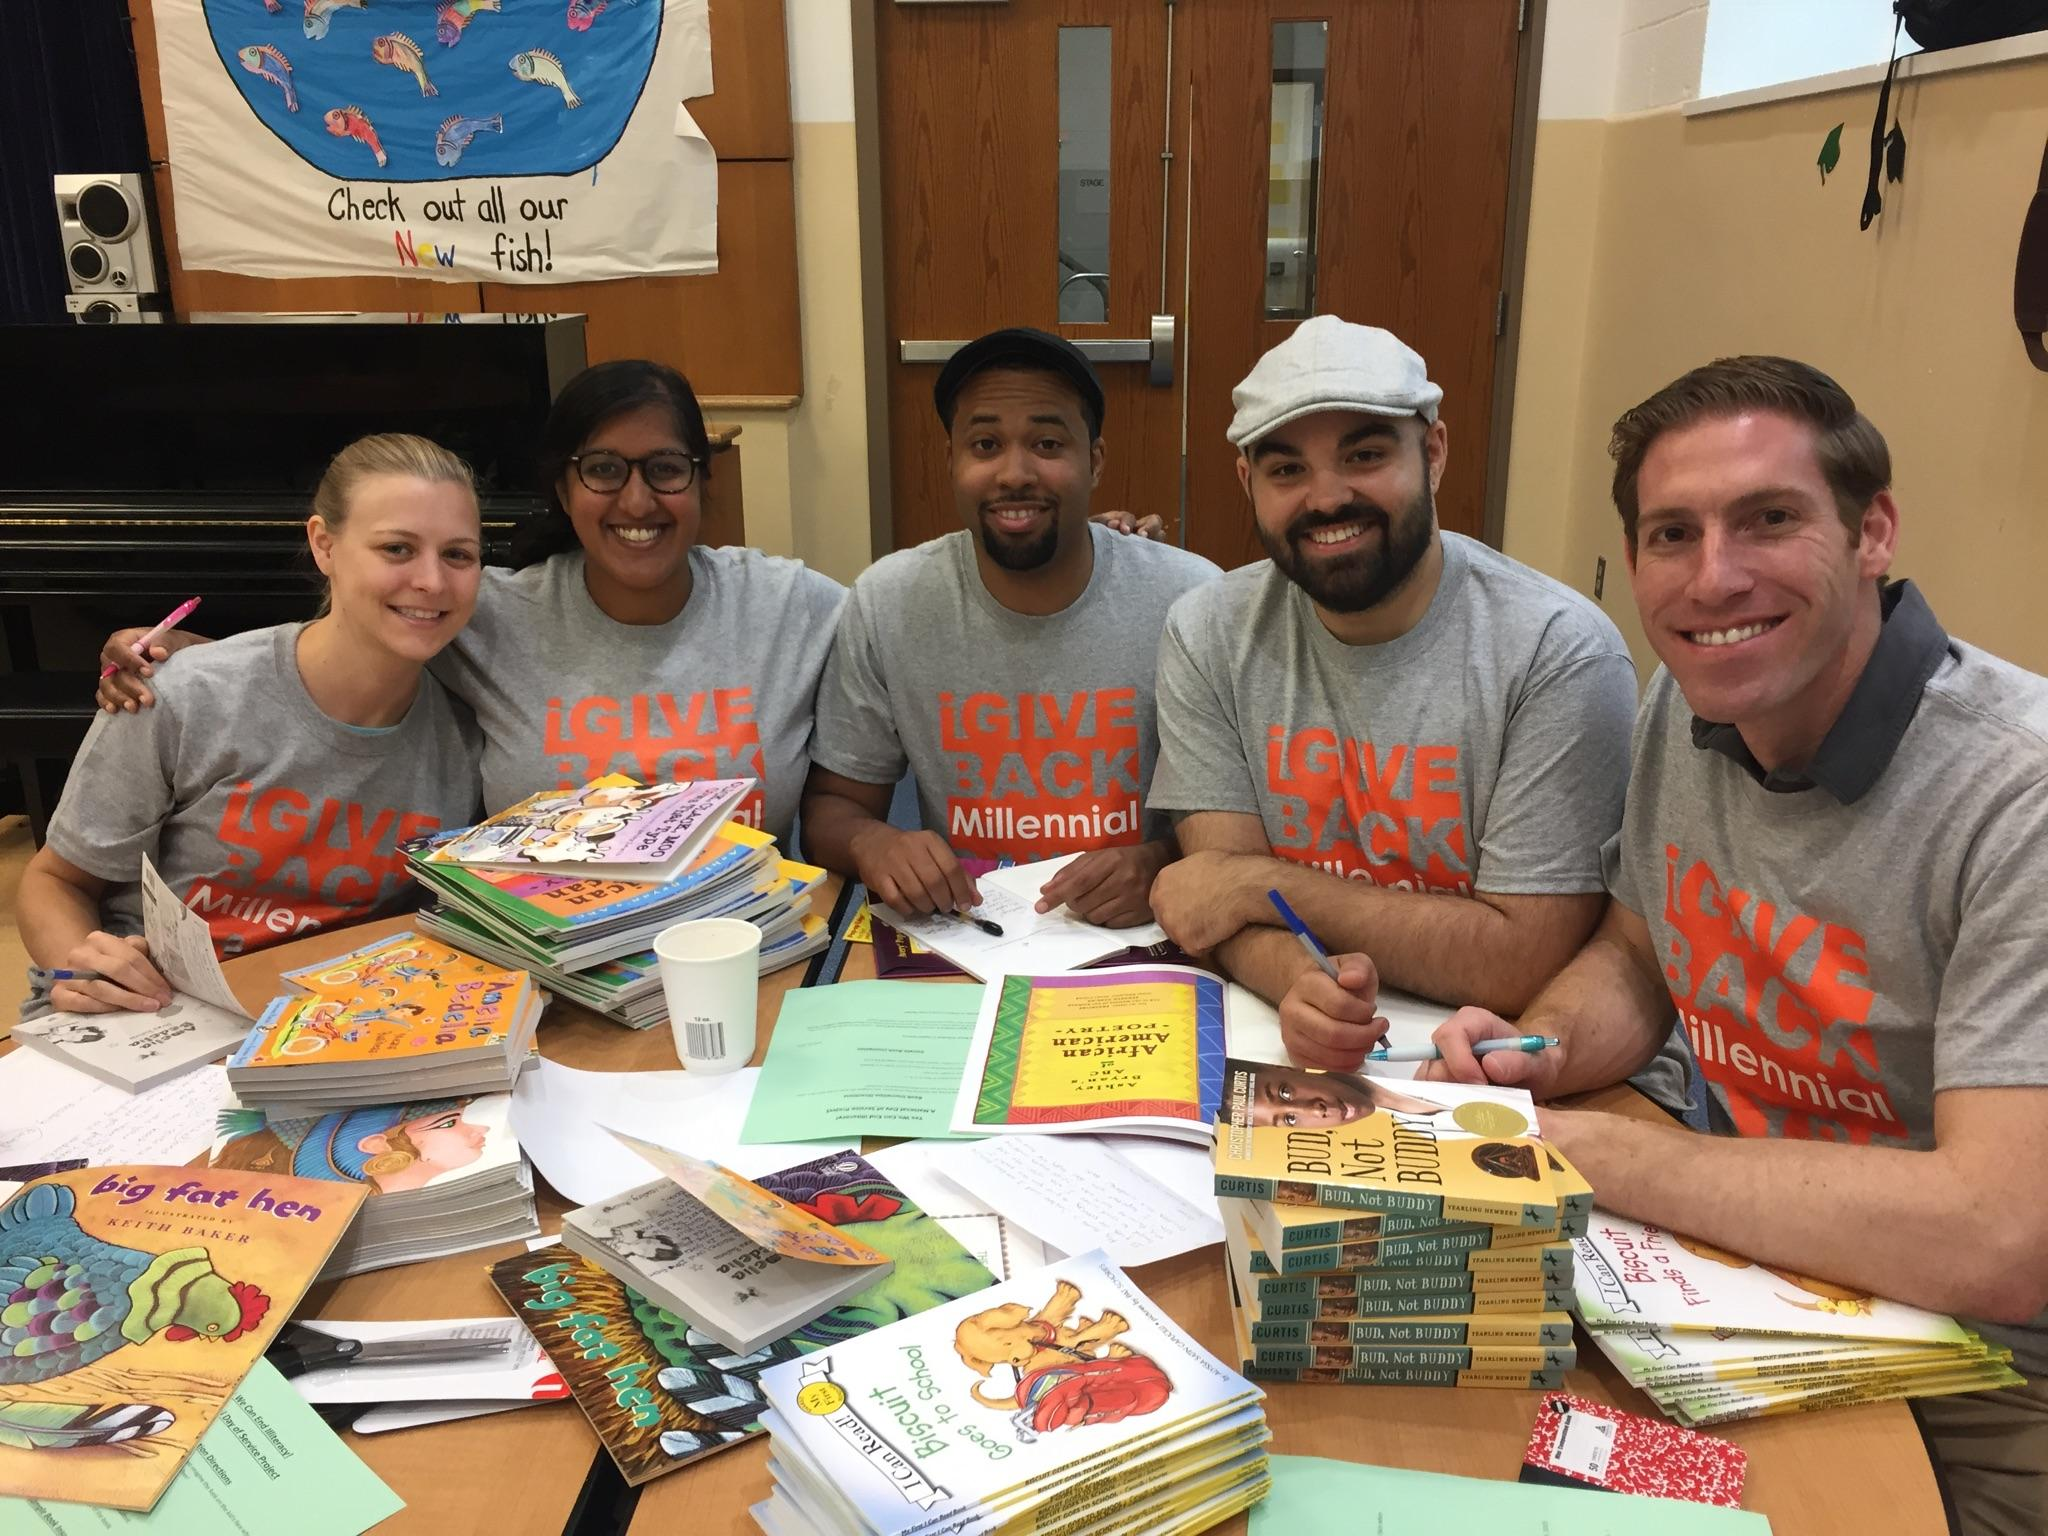 NLC DC participates in the 2015 Millennial Day of Service